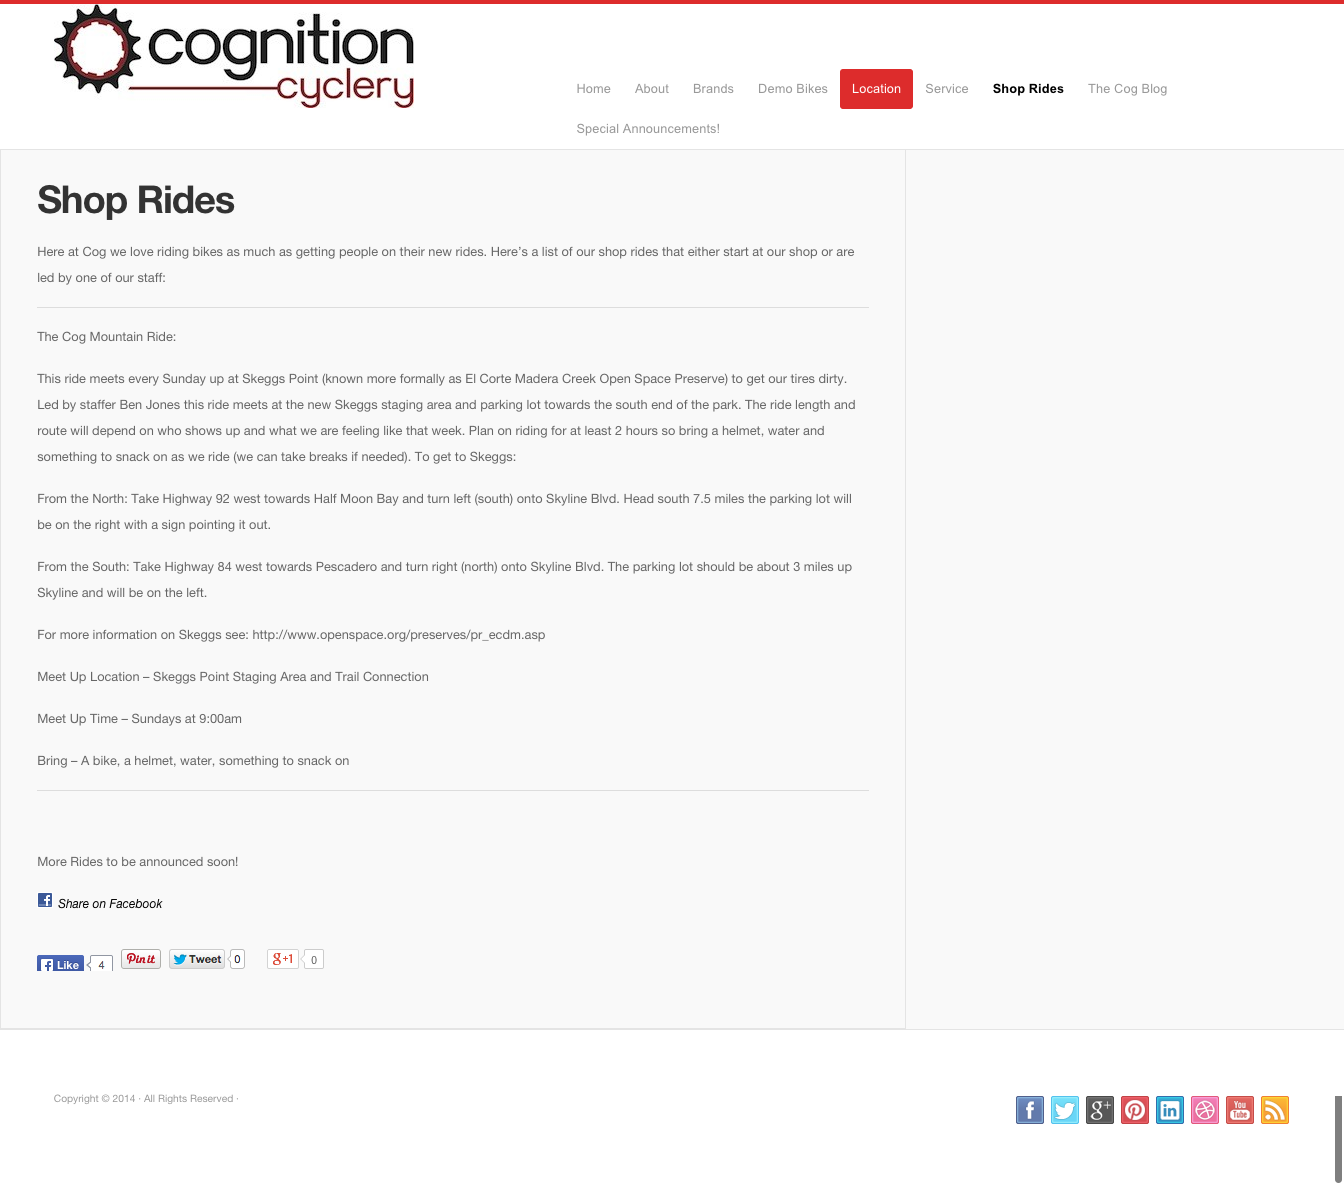 07-old-shoprides-cognitioncyclery_com.png